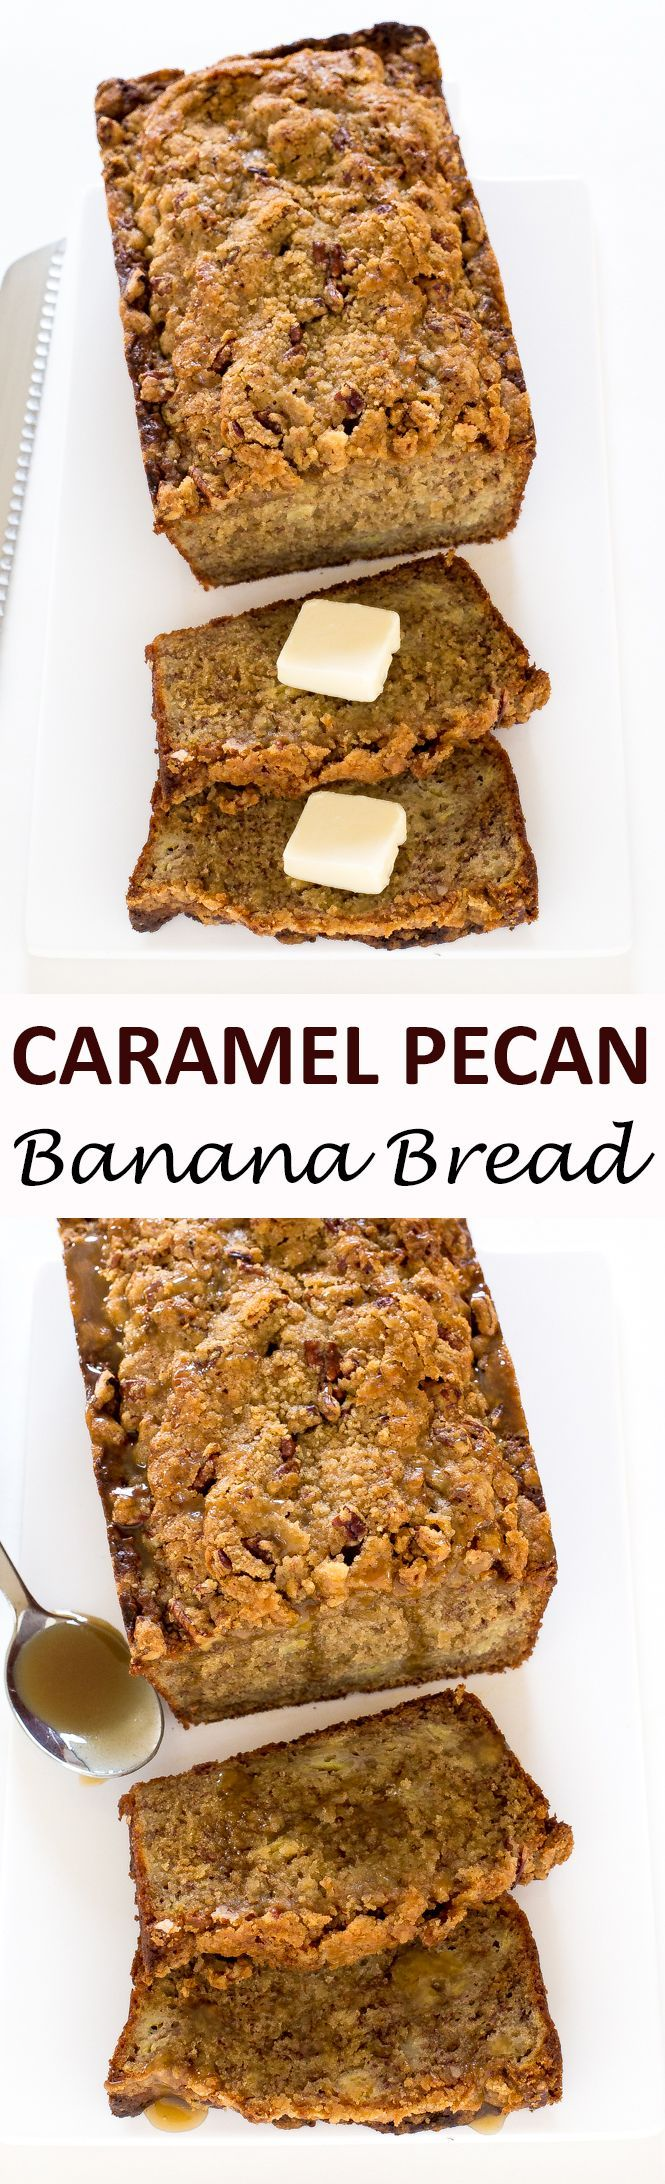 Caramel Pecan Banana Bread swirled with homemade caramel sauce and topped with a pecan streusel topping. This is the BEST banana bread you will ever have! | chefsavvy.com #recipe #banana #bread #caramel